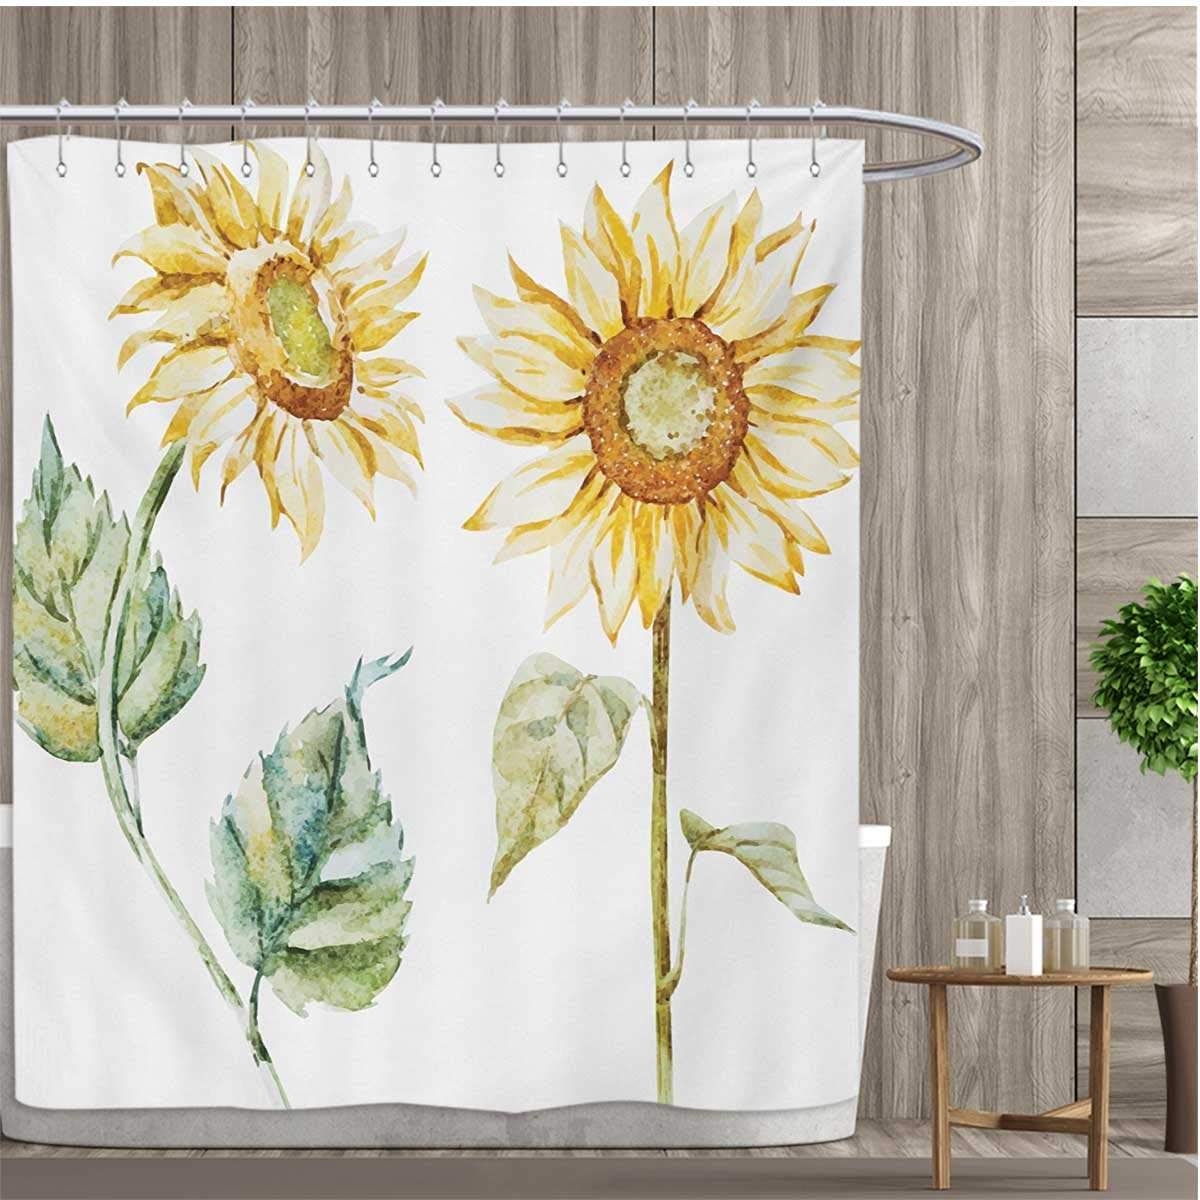 smallfly Watercolor Shower Curtains with Shower Hooks Alluring Sunflowers Summer Inspired Design Agriculture Fabric Bathroom Set with Hooks 108''x72'' Earth Yellow Pale Yellow Fern Green